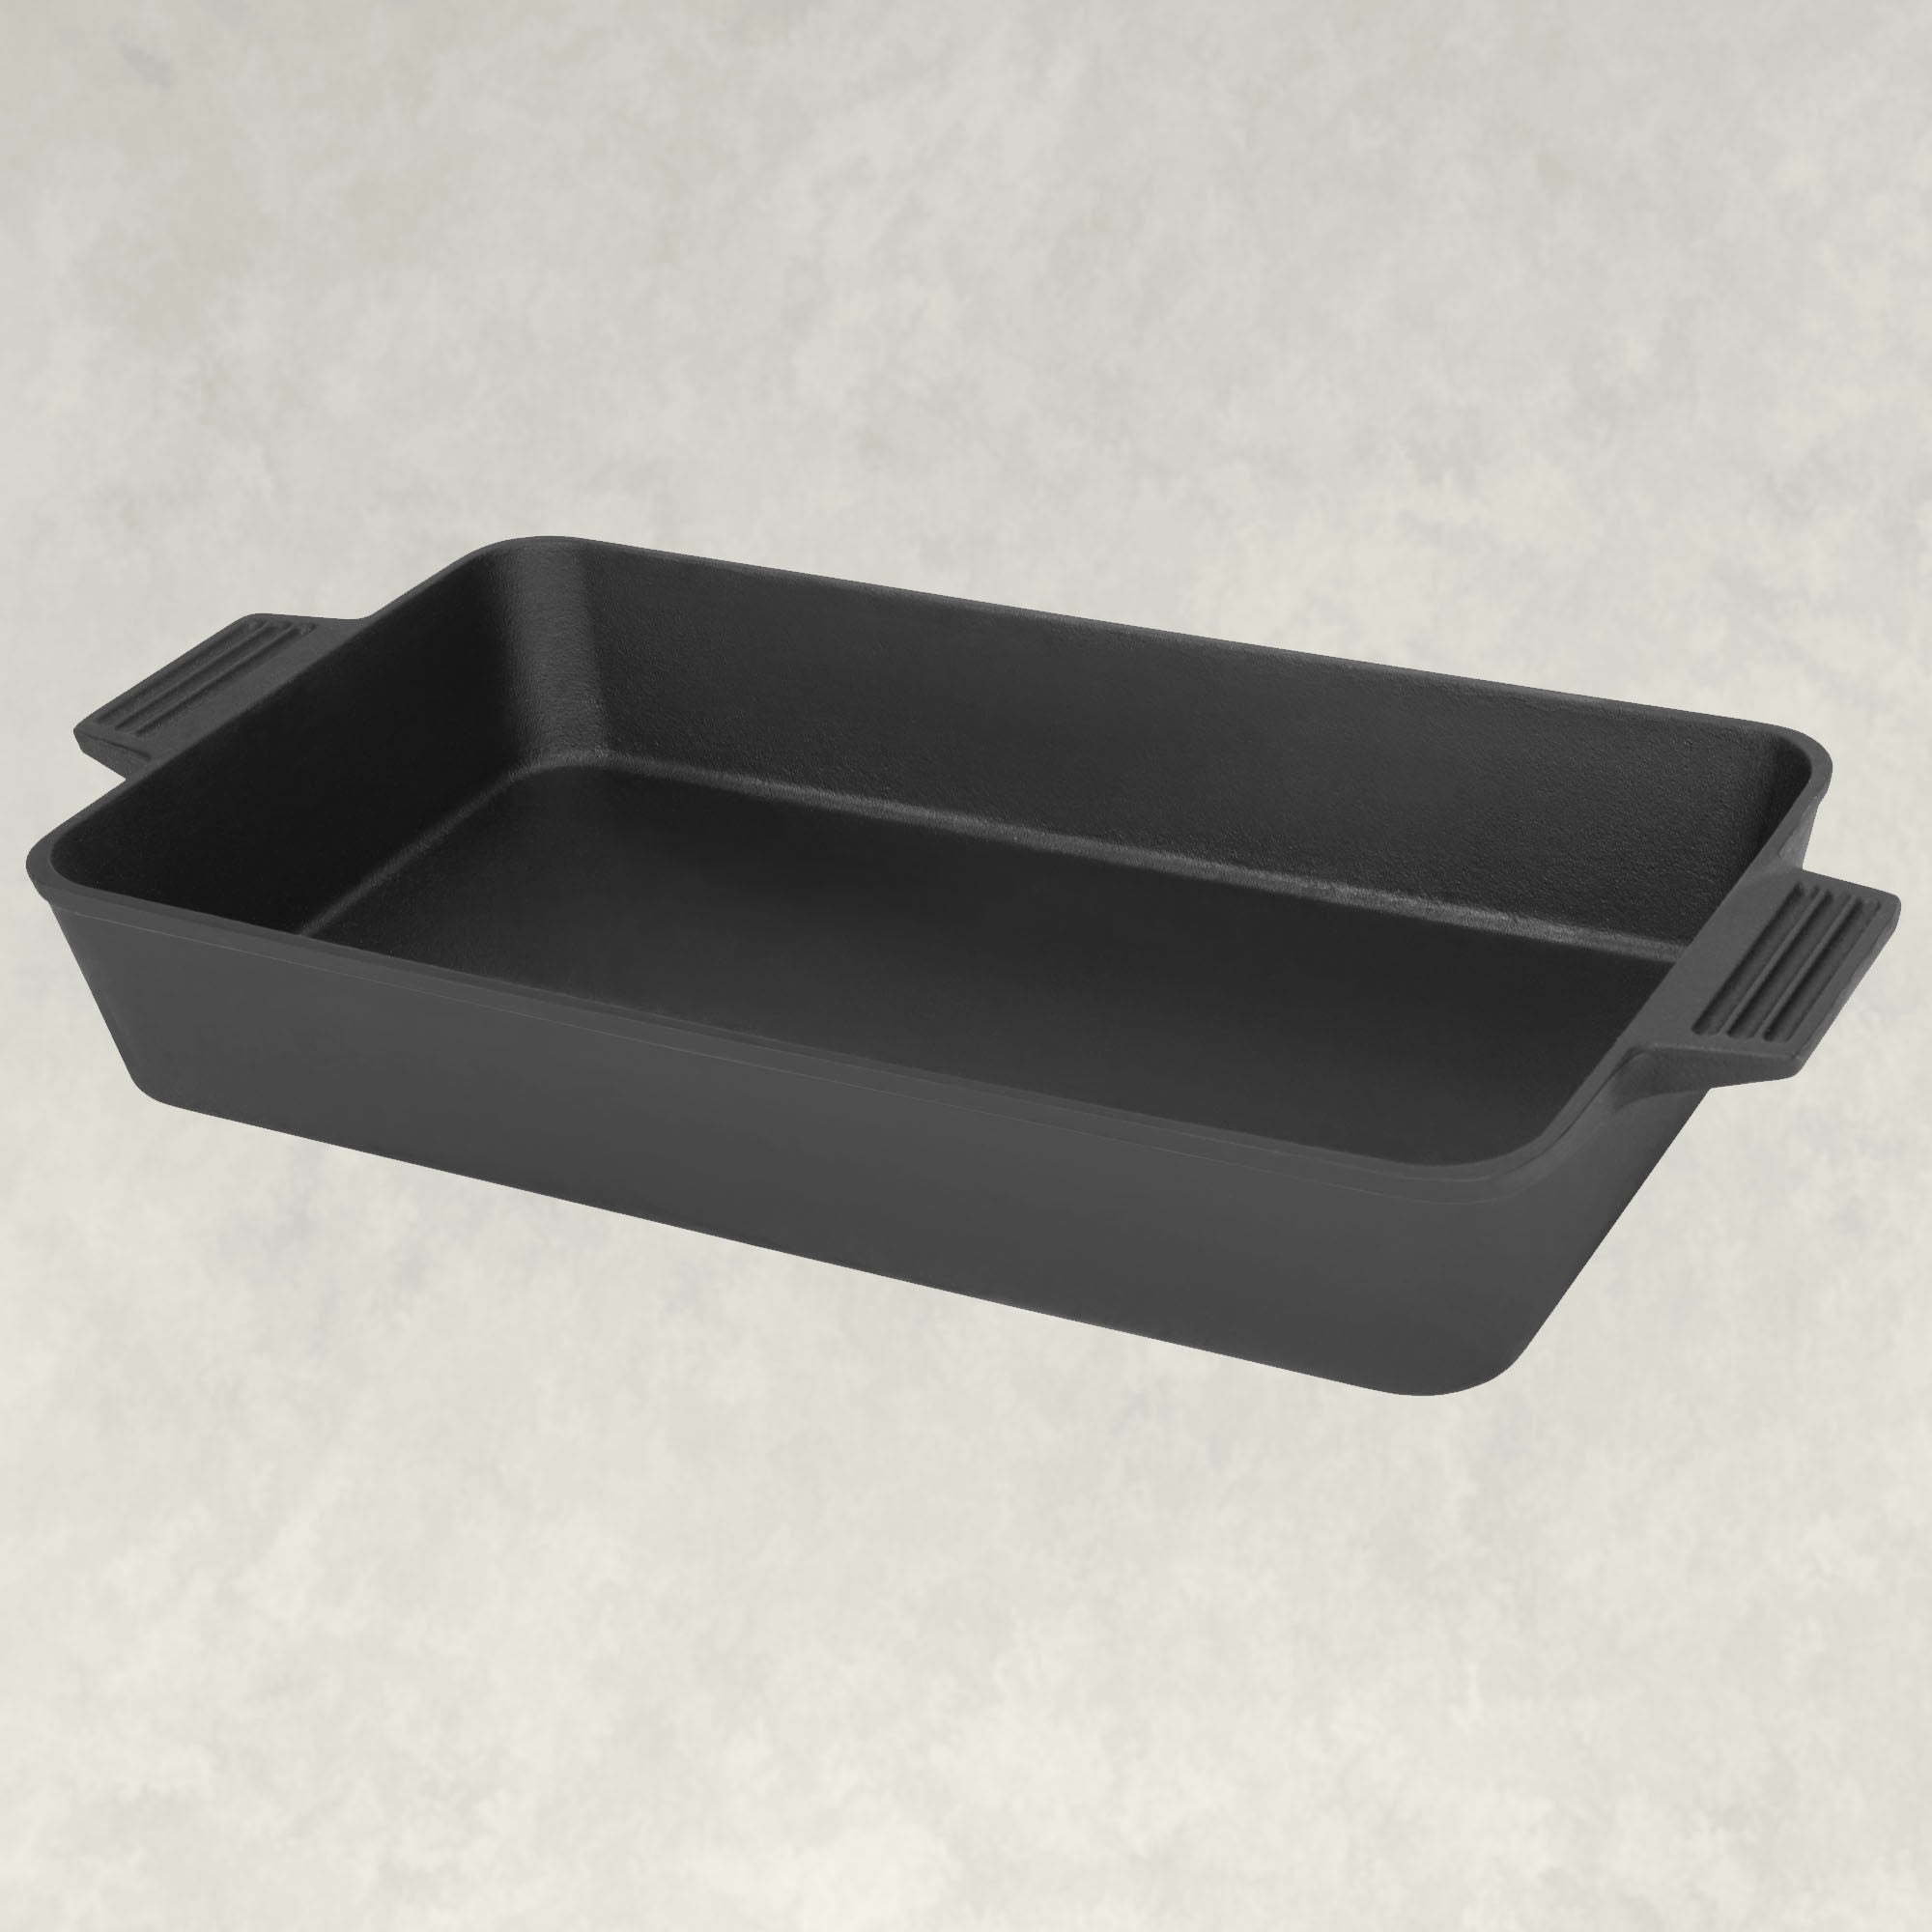 19.5-in Cast Iron Rectangular Roasting Pan